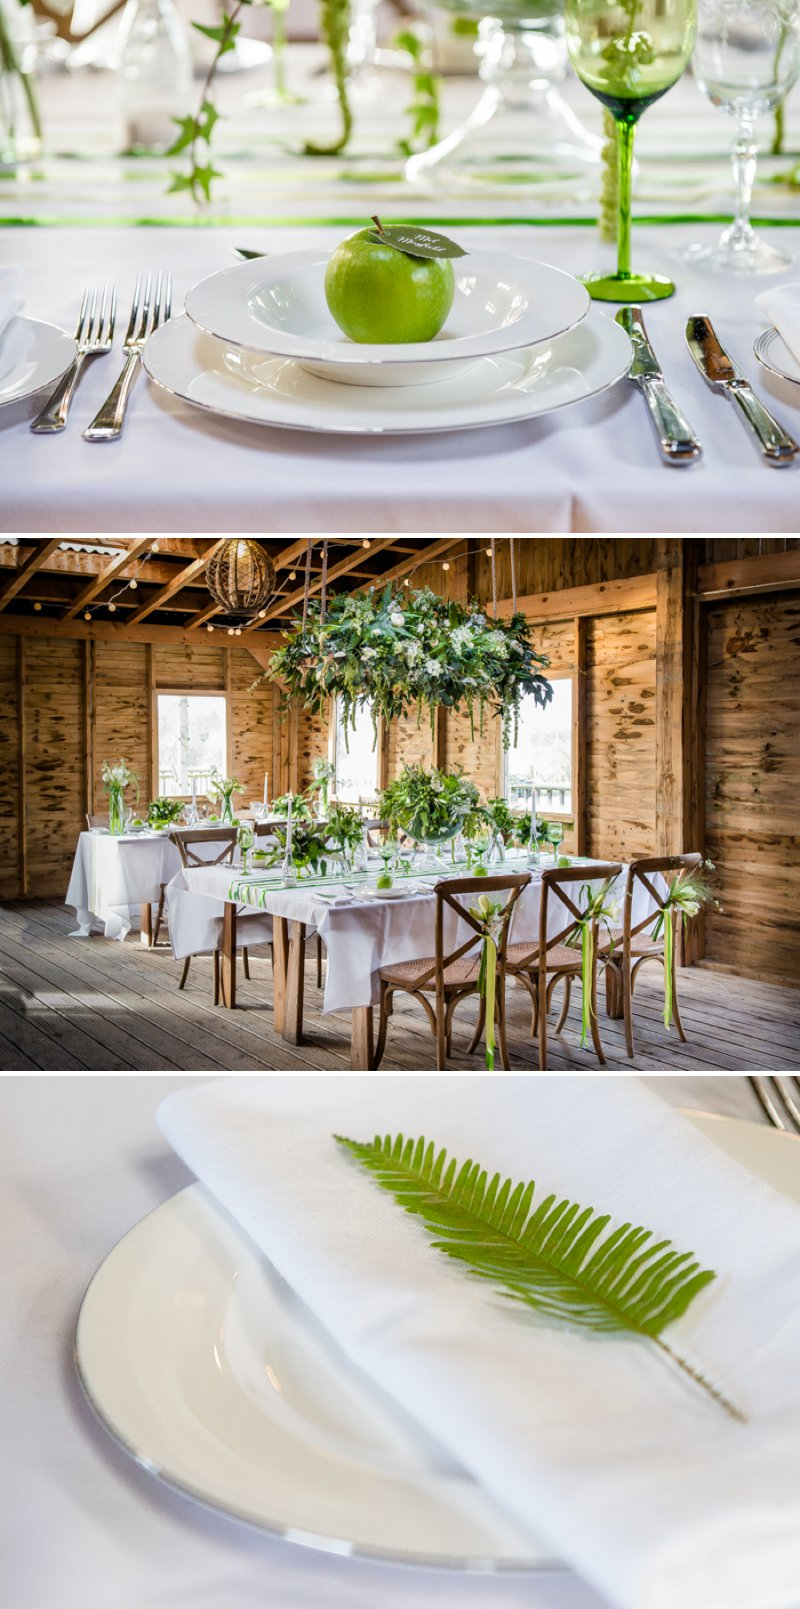 Rustic Glamour Inspired Shoot At York Maze With An Apple Green Colour Scheme Lots of Green Foliage And White Flowers With Images By Dominic Wright Photography 2